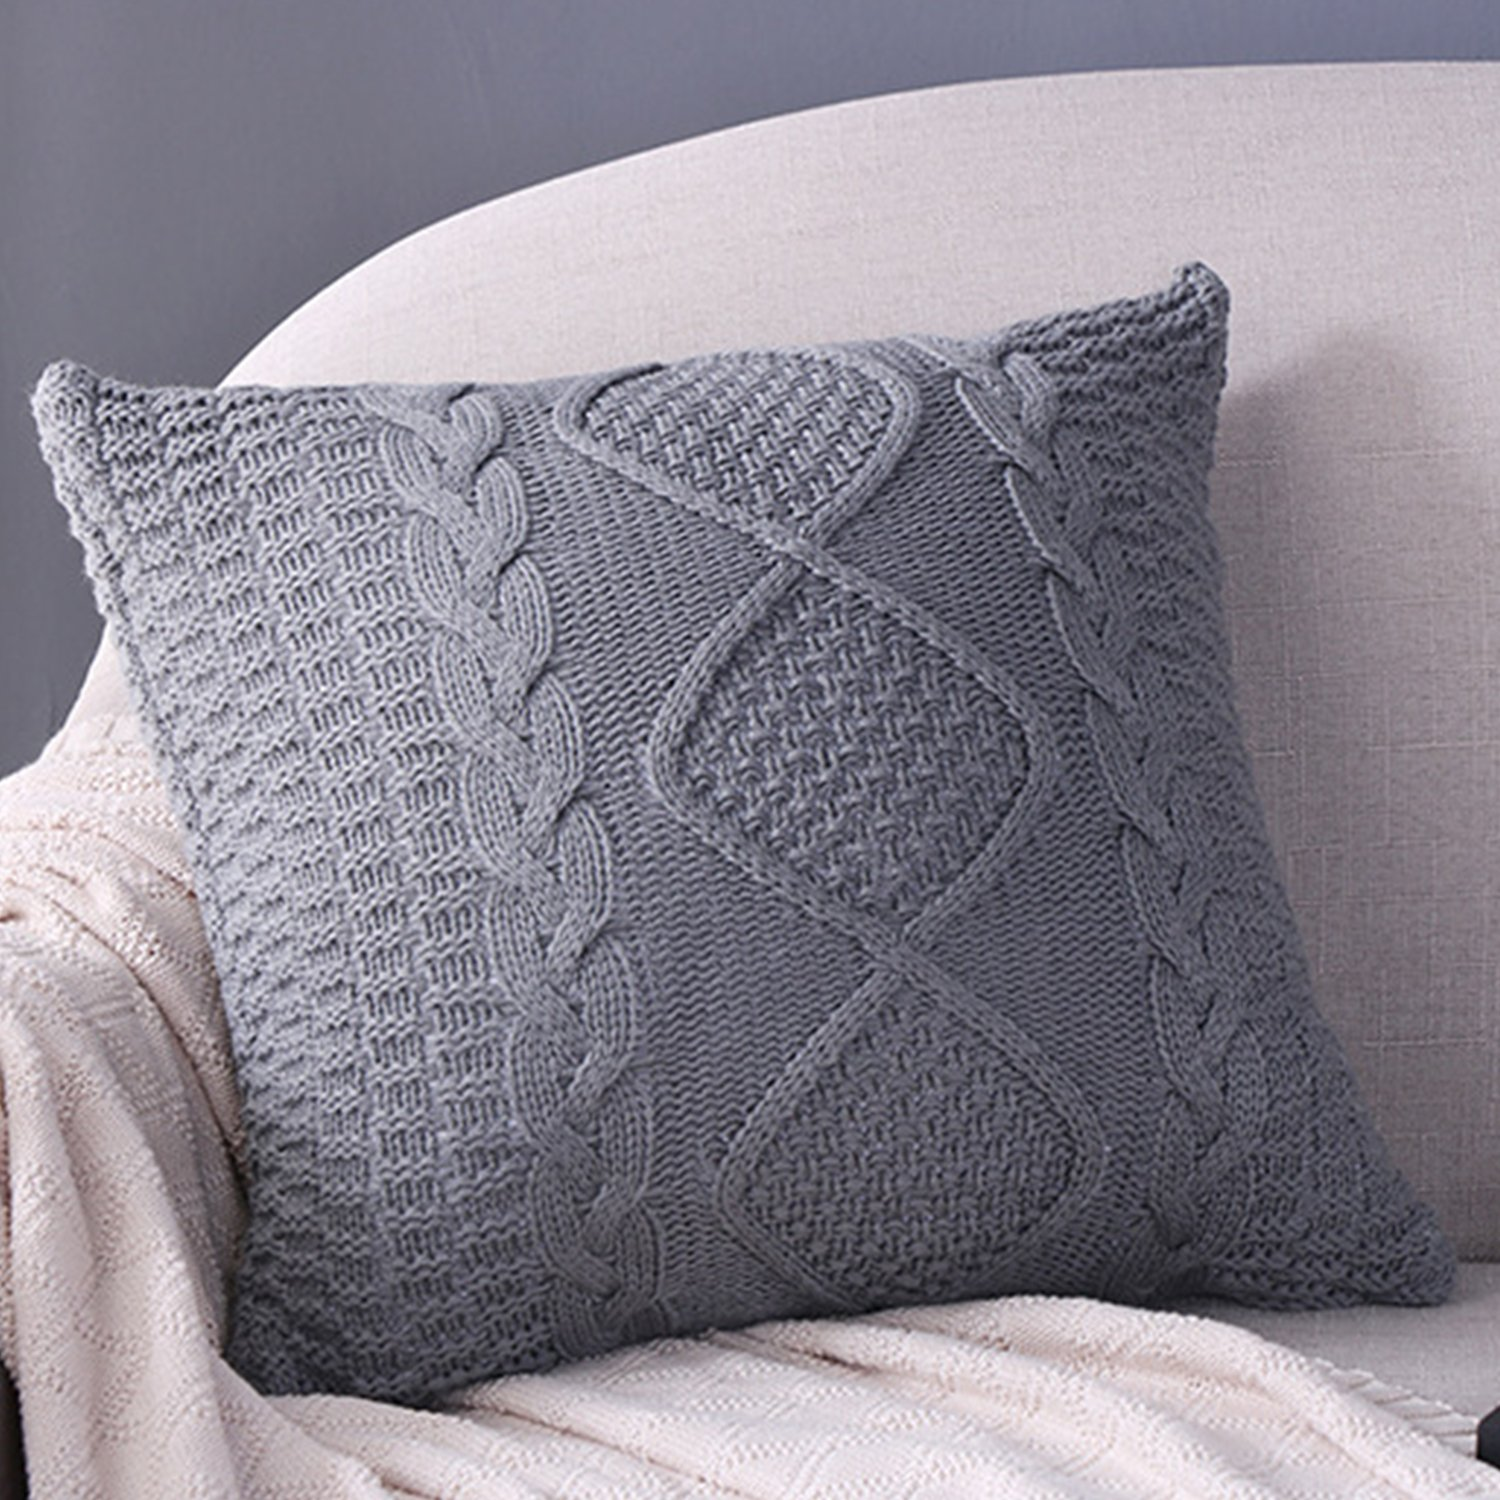 Awe Inspiring Fashion Cotton Cable Knit Pillow Cushion Double Side Knitted Throw Pillow Cover For Counch Bed Car Decoration Gray Theyellowbook Wood Chair Design Ideas Theyellowbookinfo